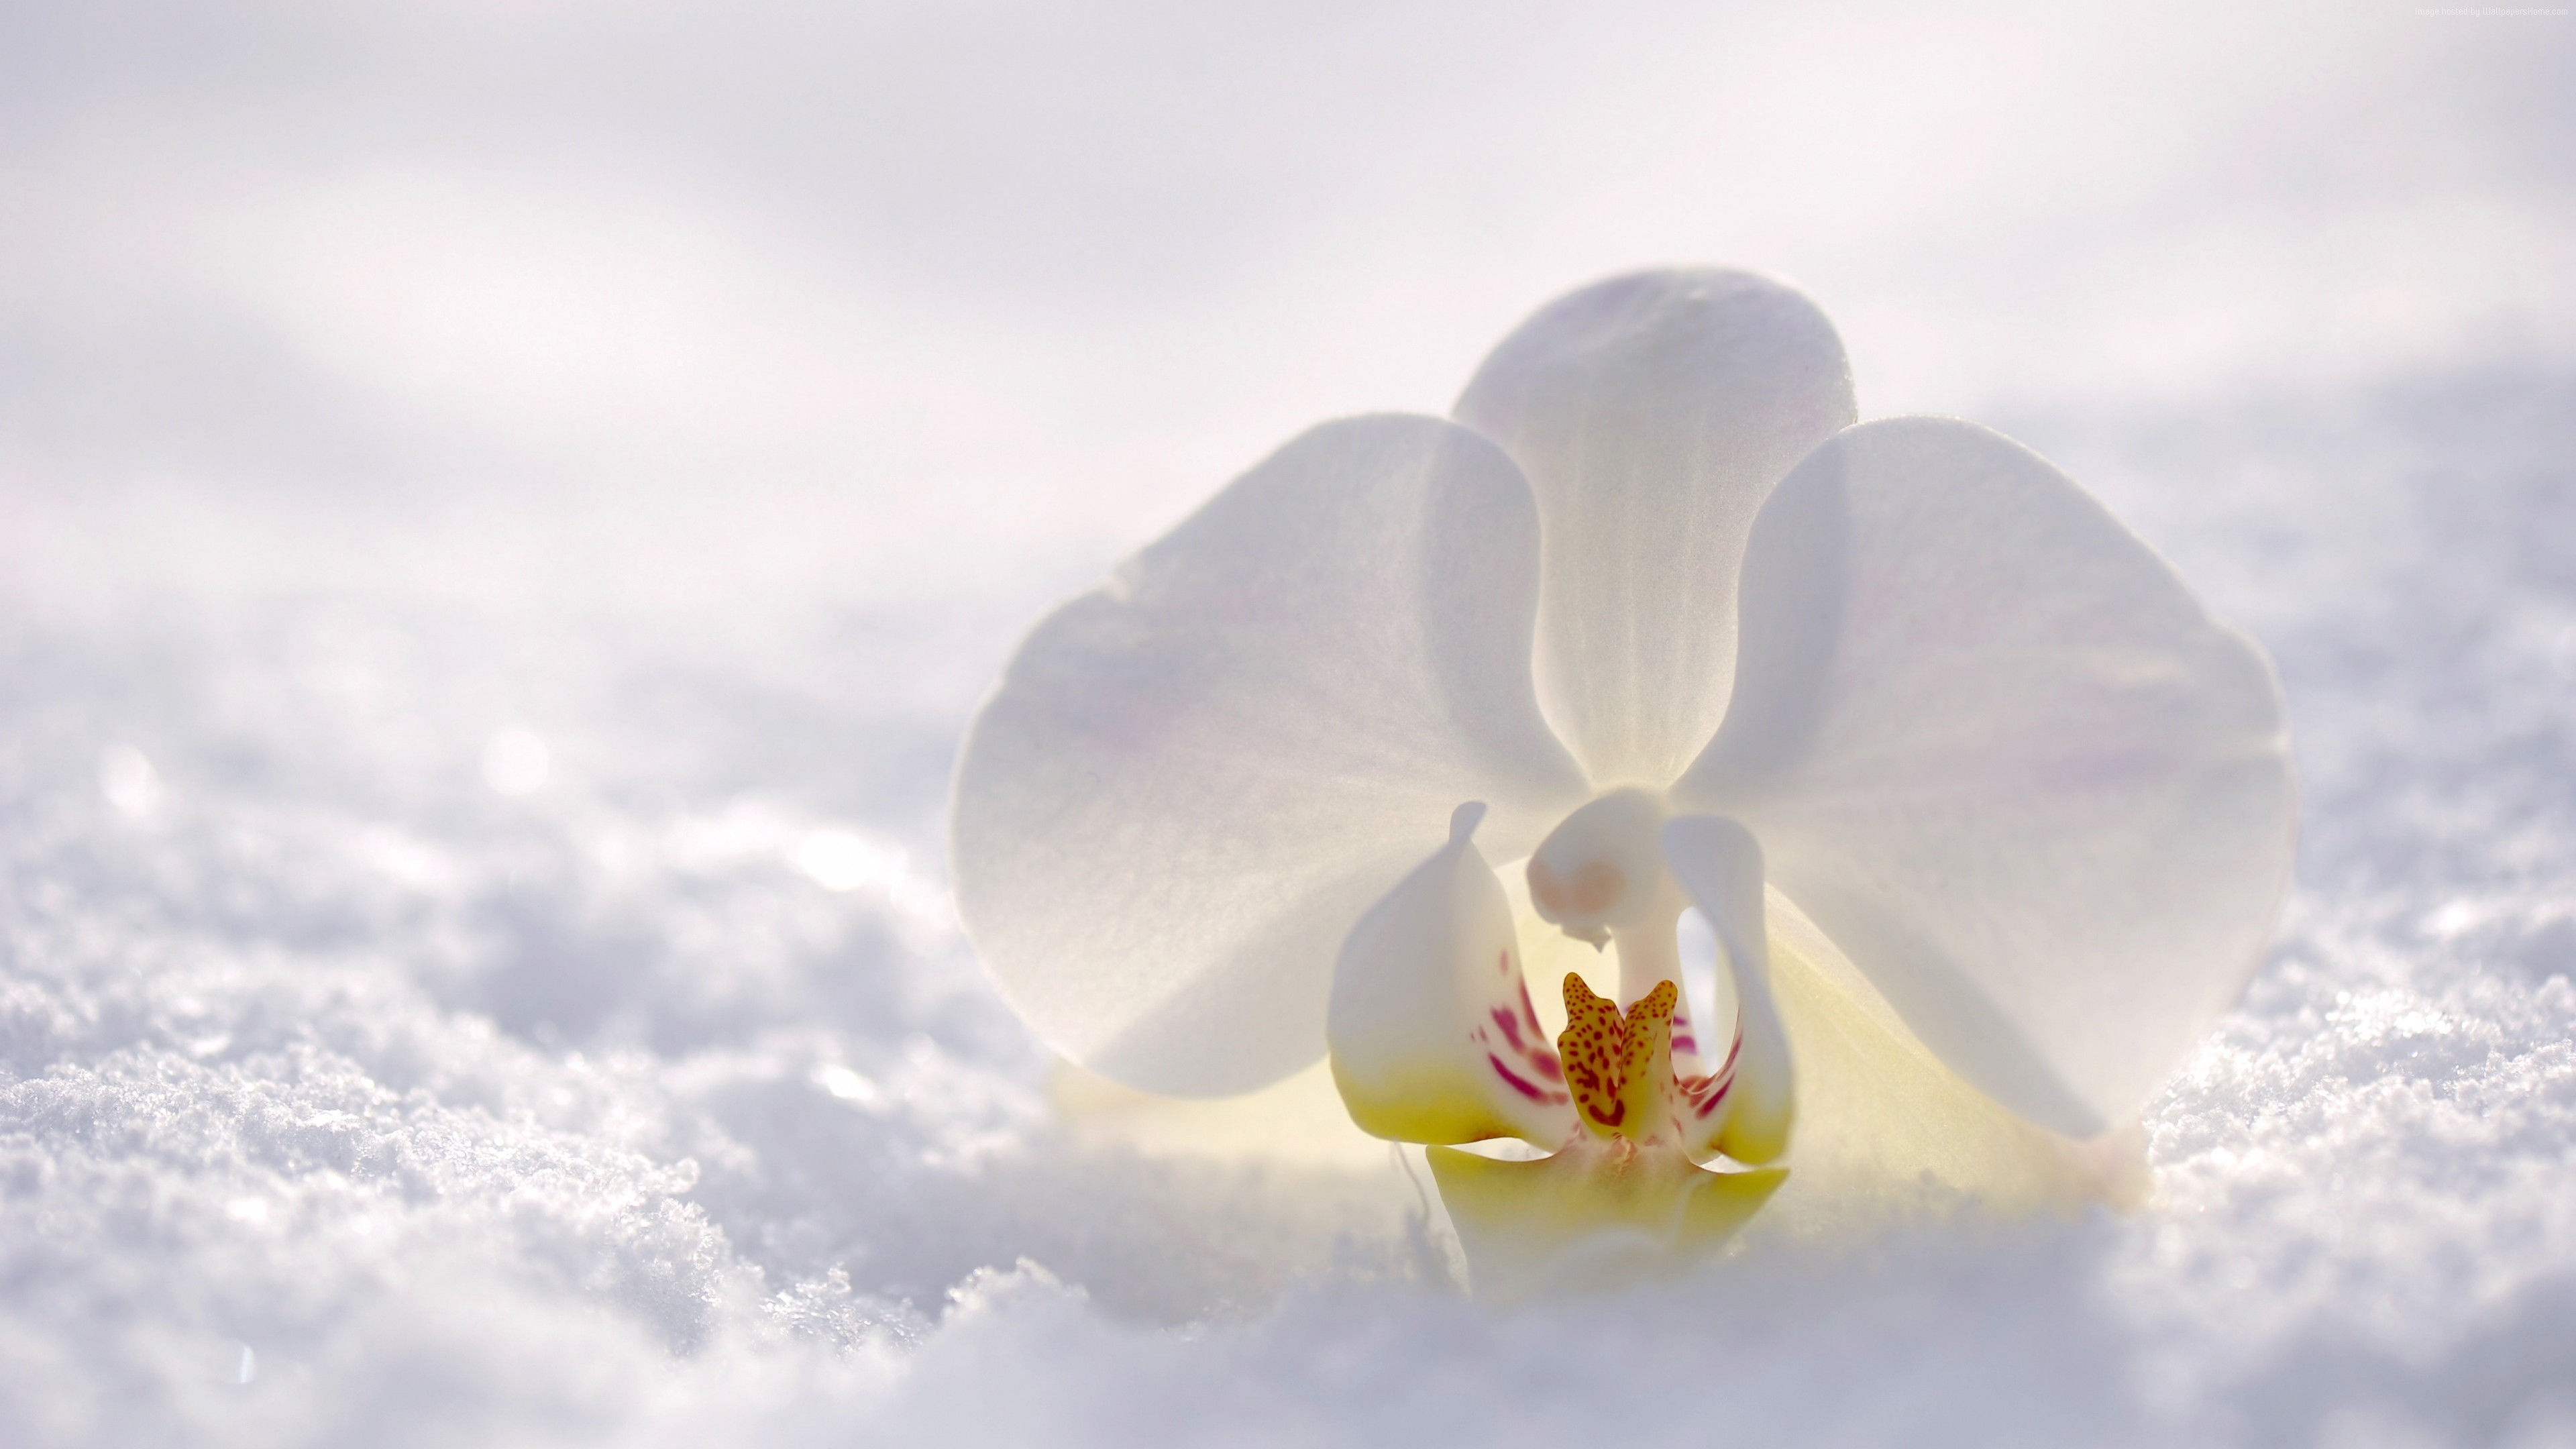 Stock Images orchid, flower, snow, winter, white, 4k, Stock Images